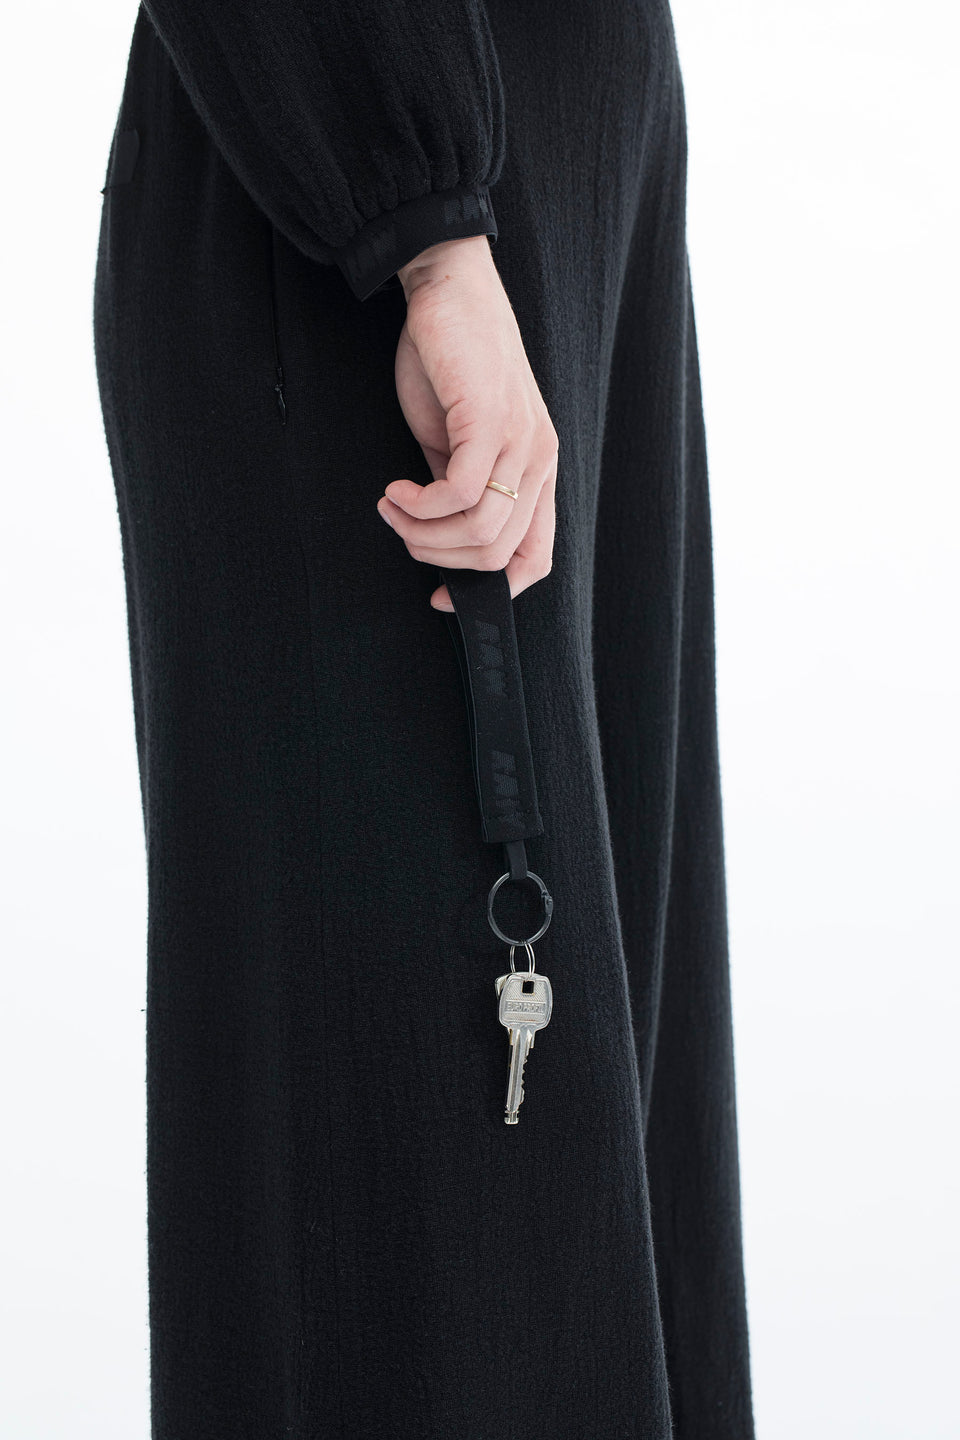 RAW U-Key Ring Black